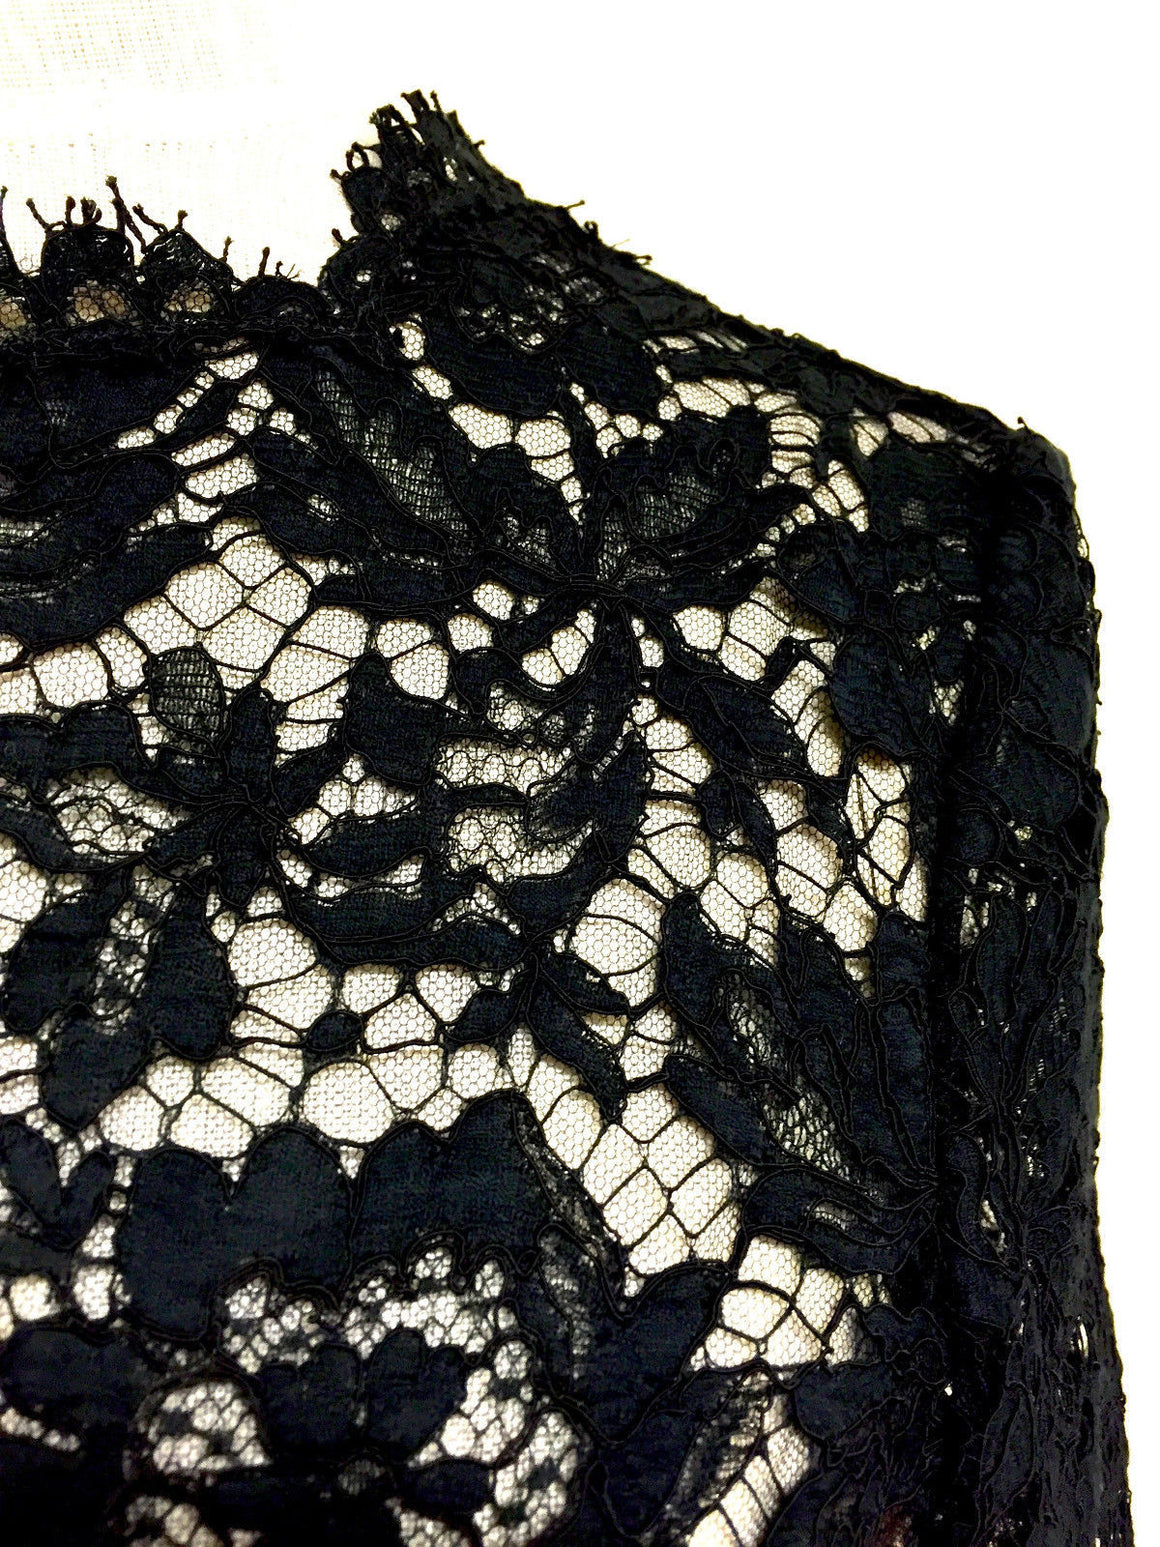 bisbiz.com VALENTINO Black Lace Nude Lining Bow Detail Cocktail Evening LBD Dress SIZE: 4 - Bis Luxury Resale